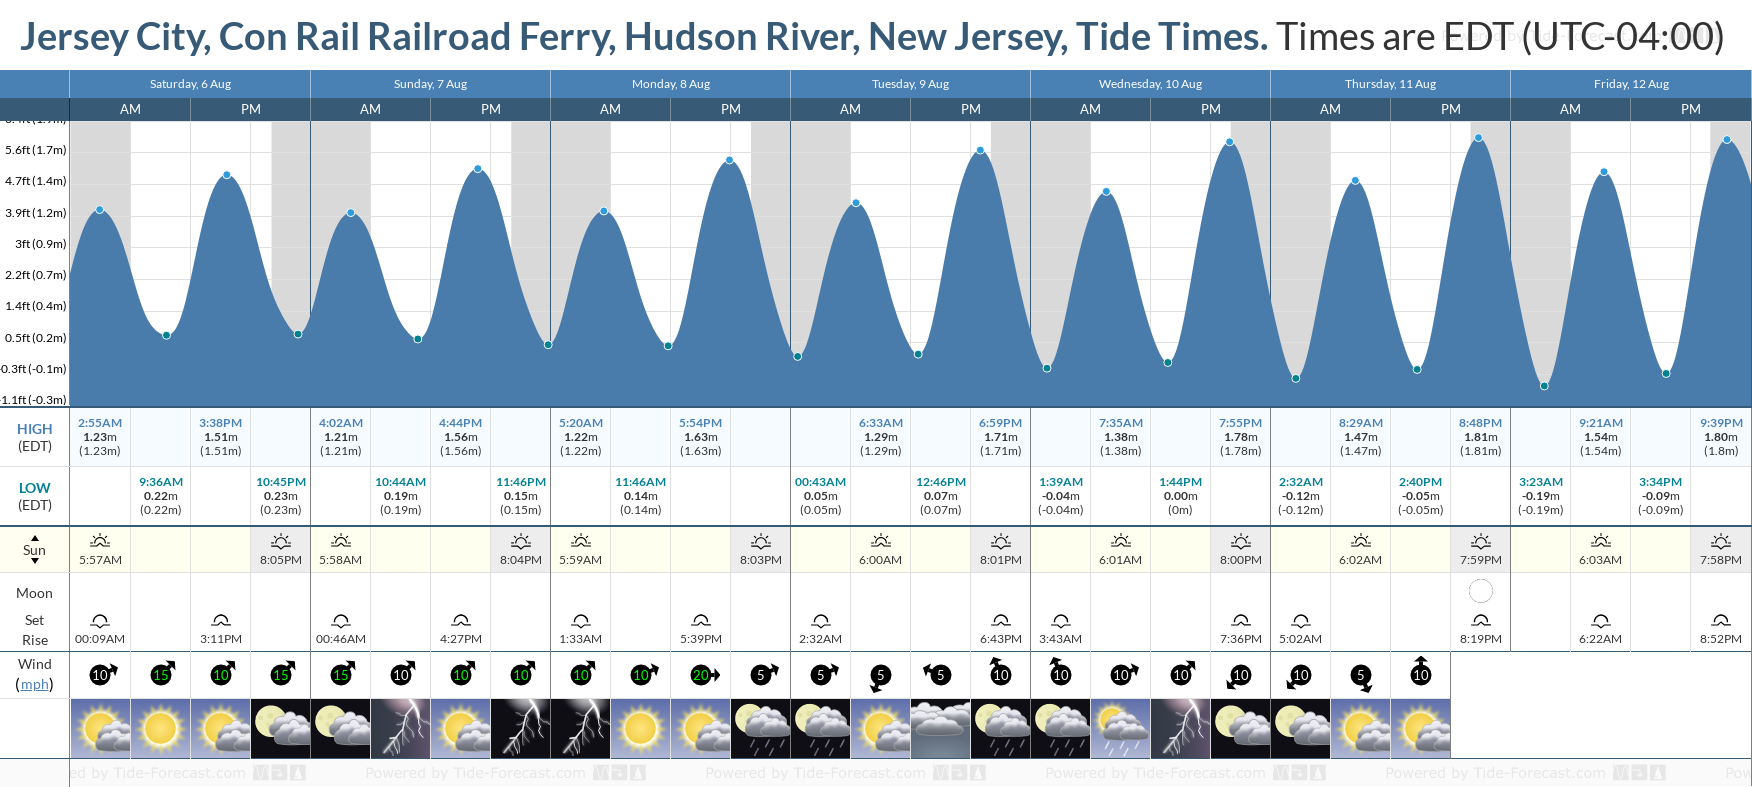 Jersey City, Con Rail Railroad Ferry, Hudson River, New Jersey Tide Chart including high and low tide tide times for the next 7 days